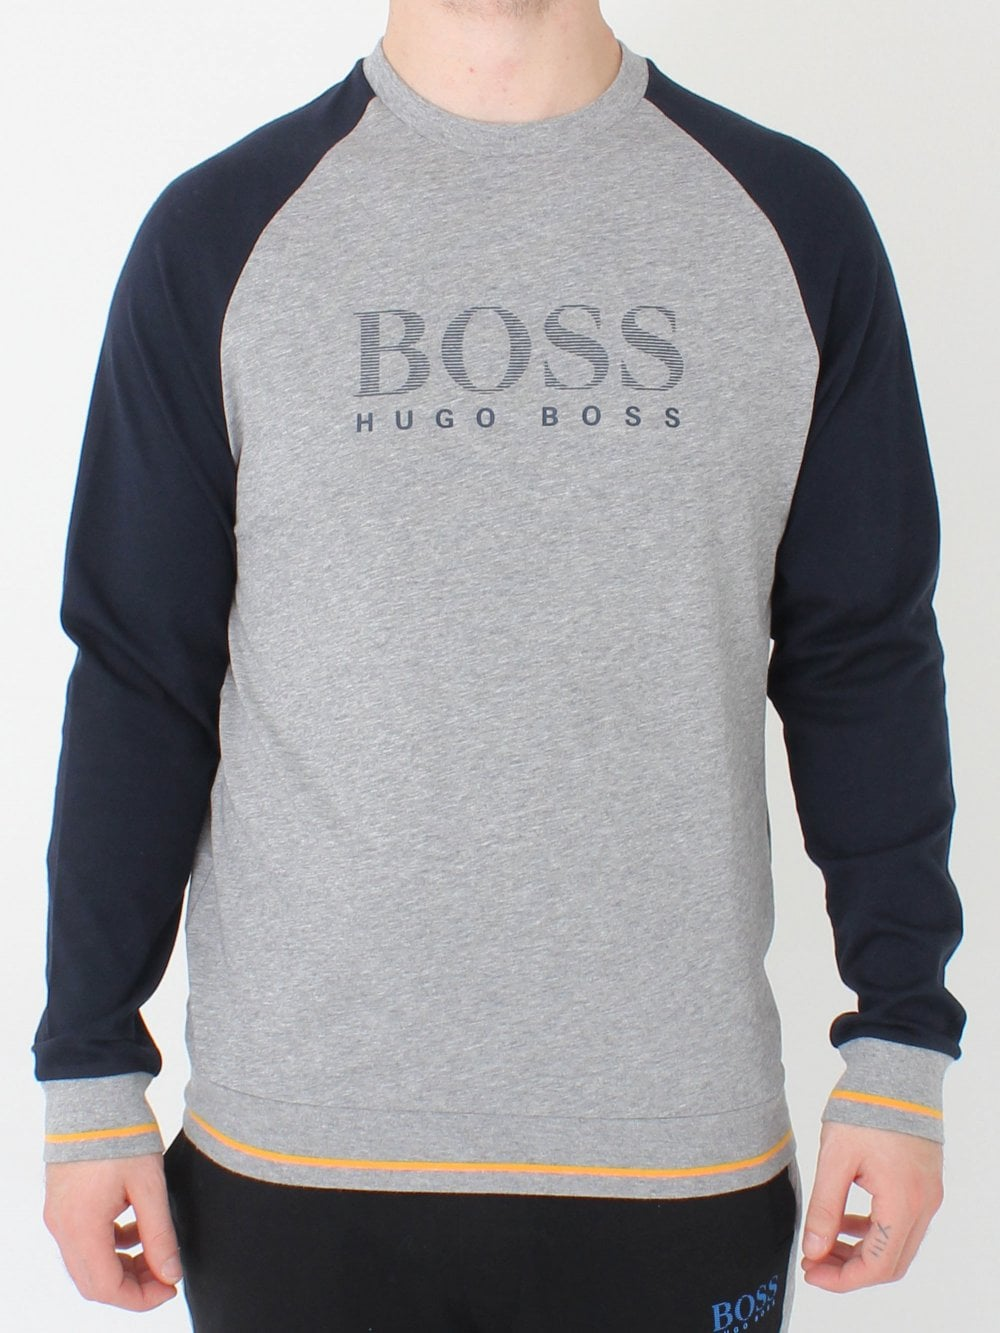 2f3eaed5f Hugo Boss Authentic Crew Sweatshirt in Medium Grey | Northern Threads